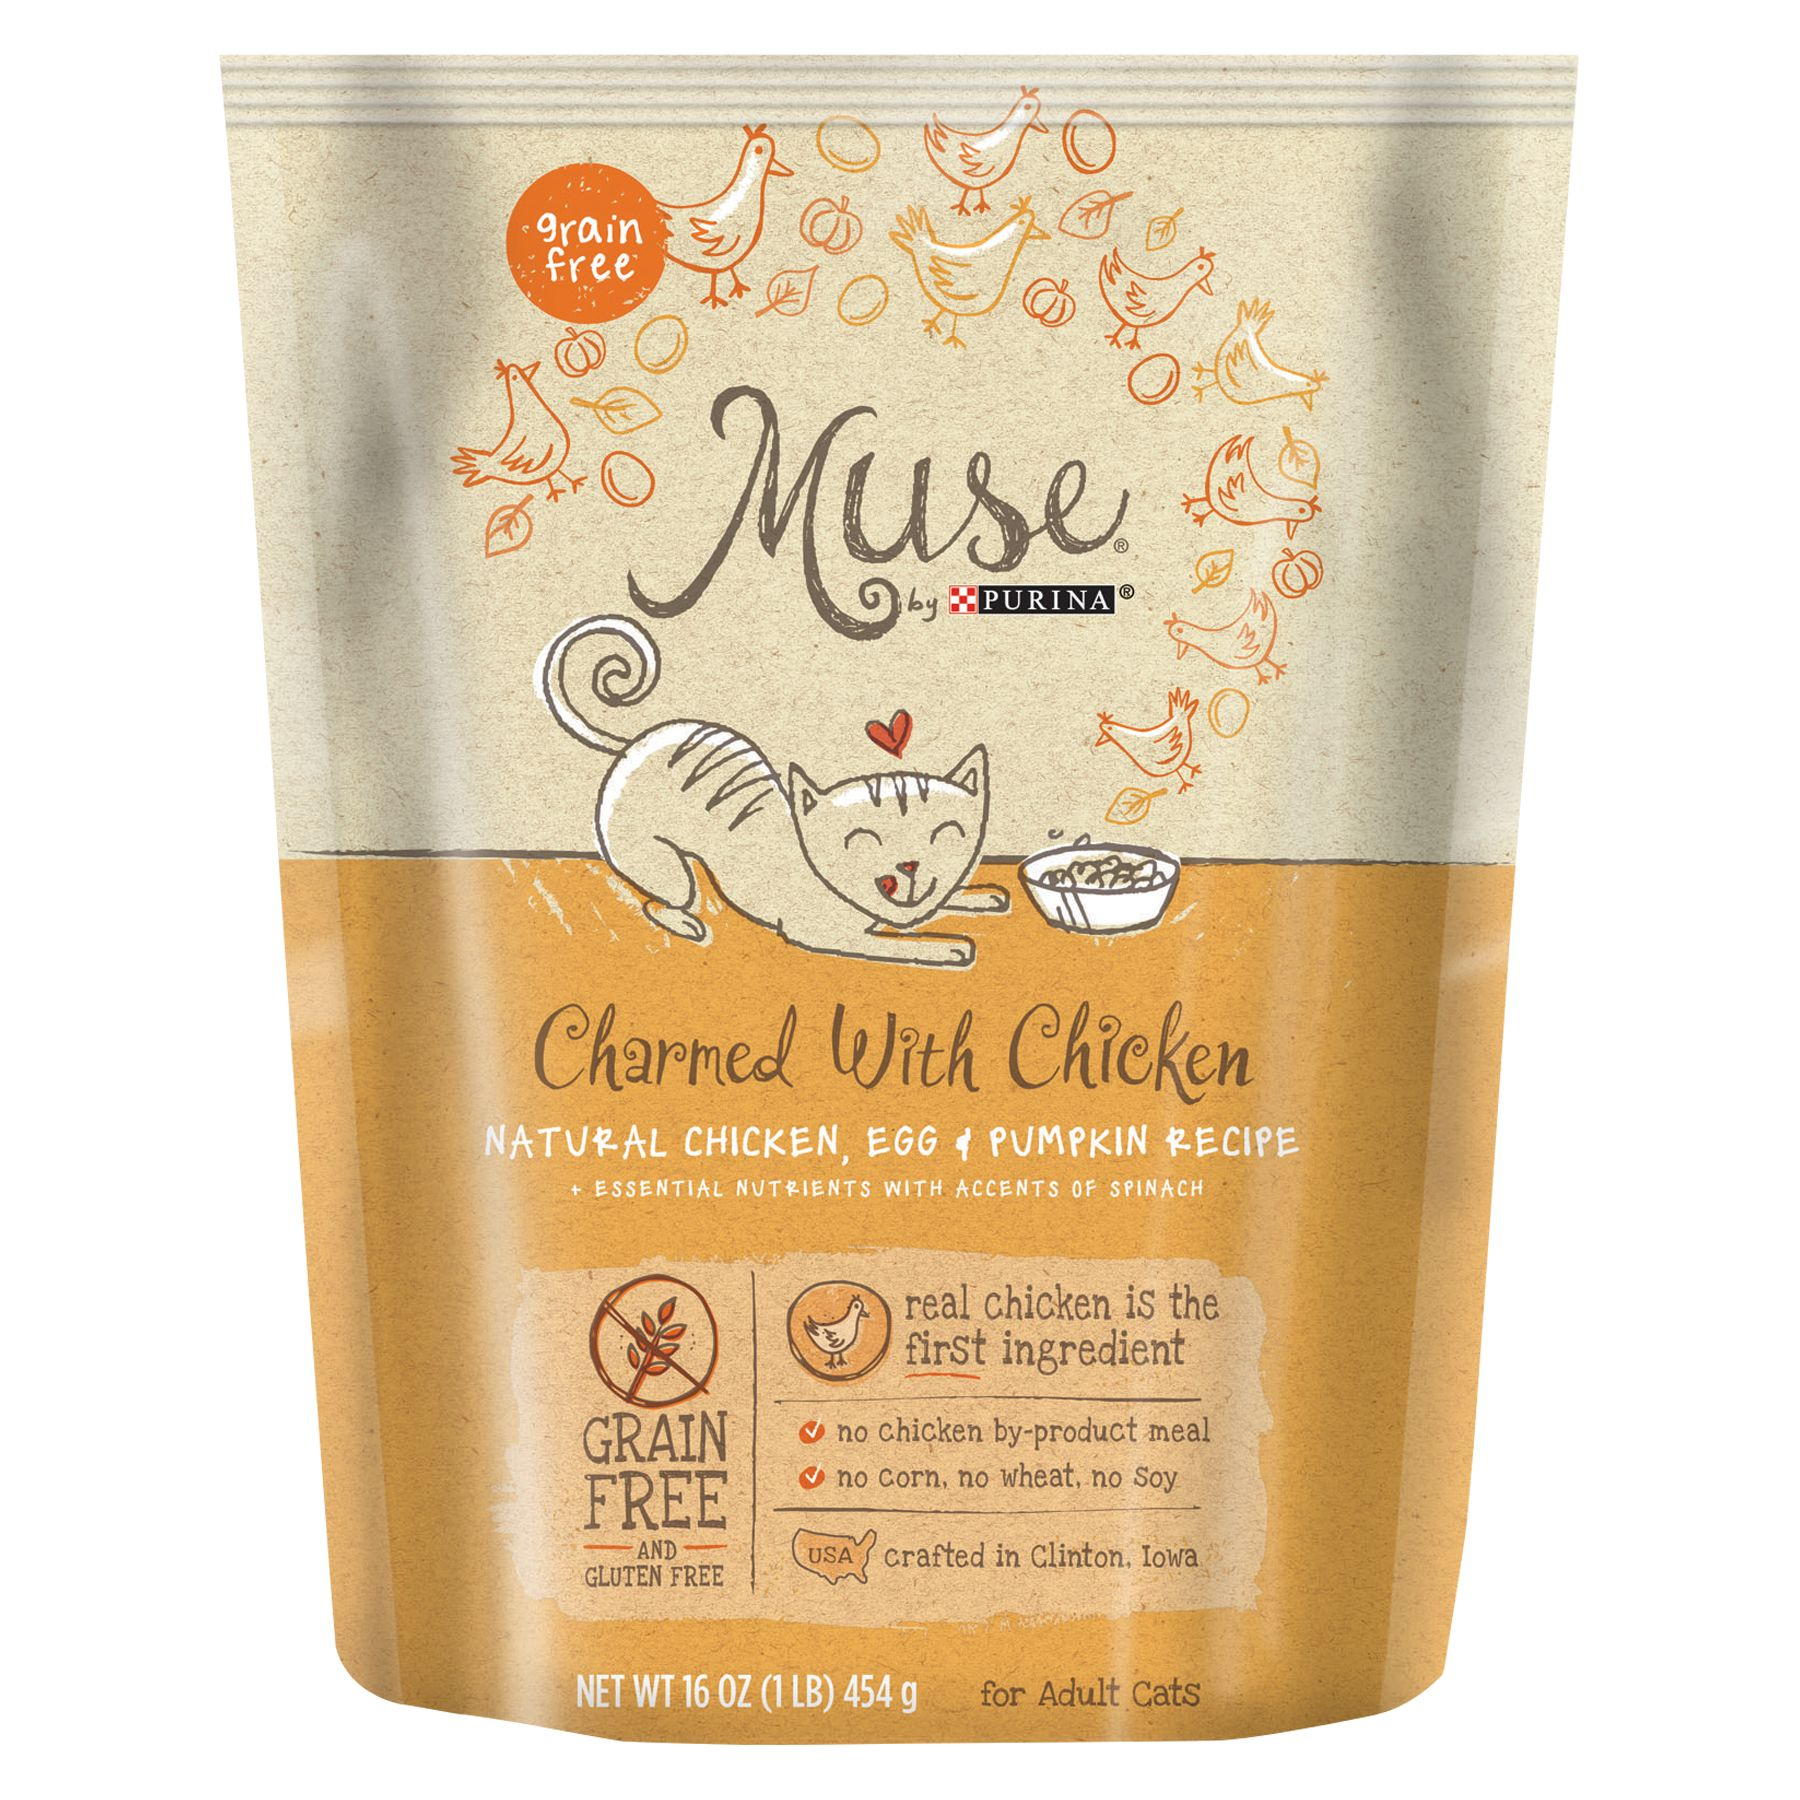 Muse Adult Cat Food Grain Free Gluten Free Essential Nutrients Natural Chicken Egg And Pumpkin Size 1 Lb